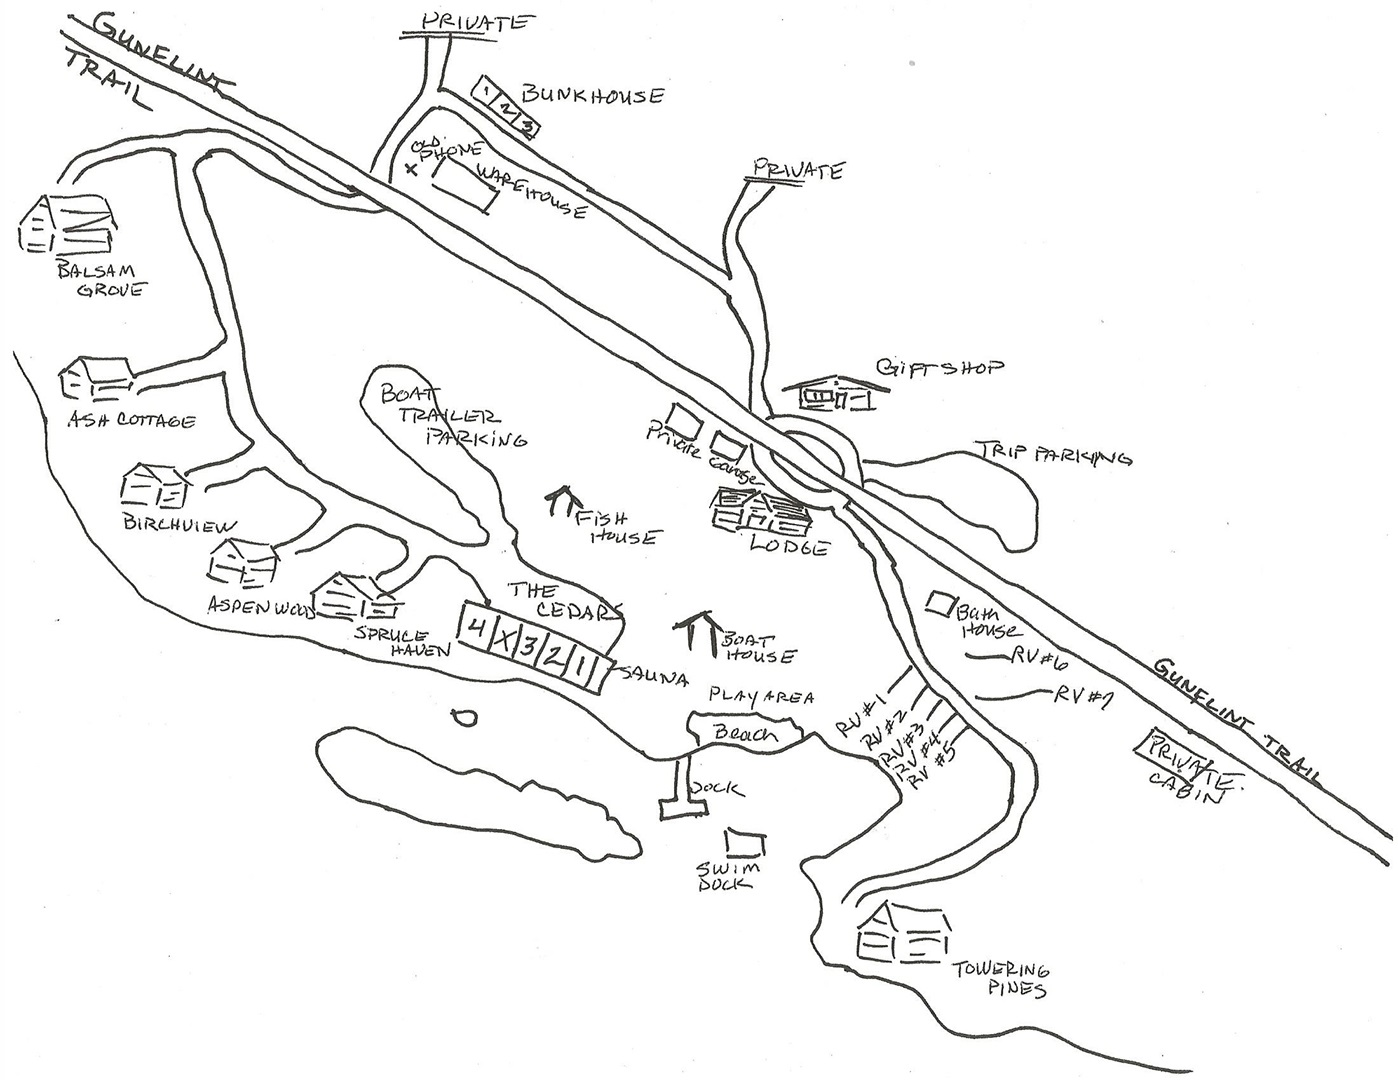 Gunflint Trail Lodging and Camping NorWester Lodge Map